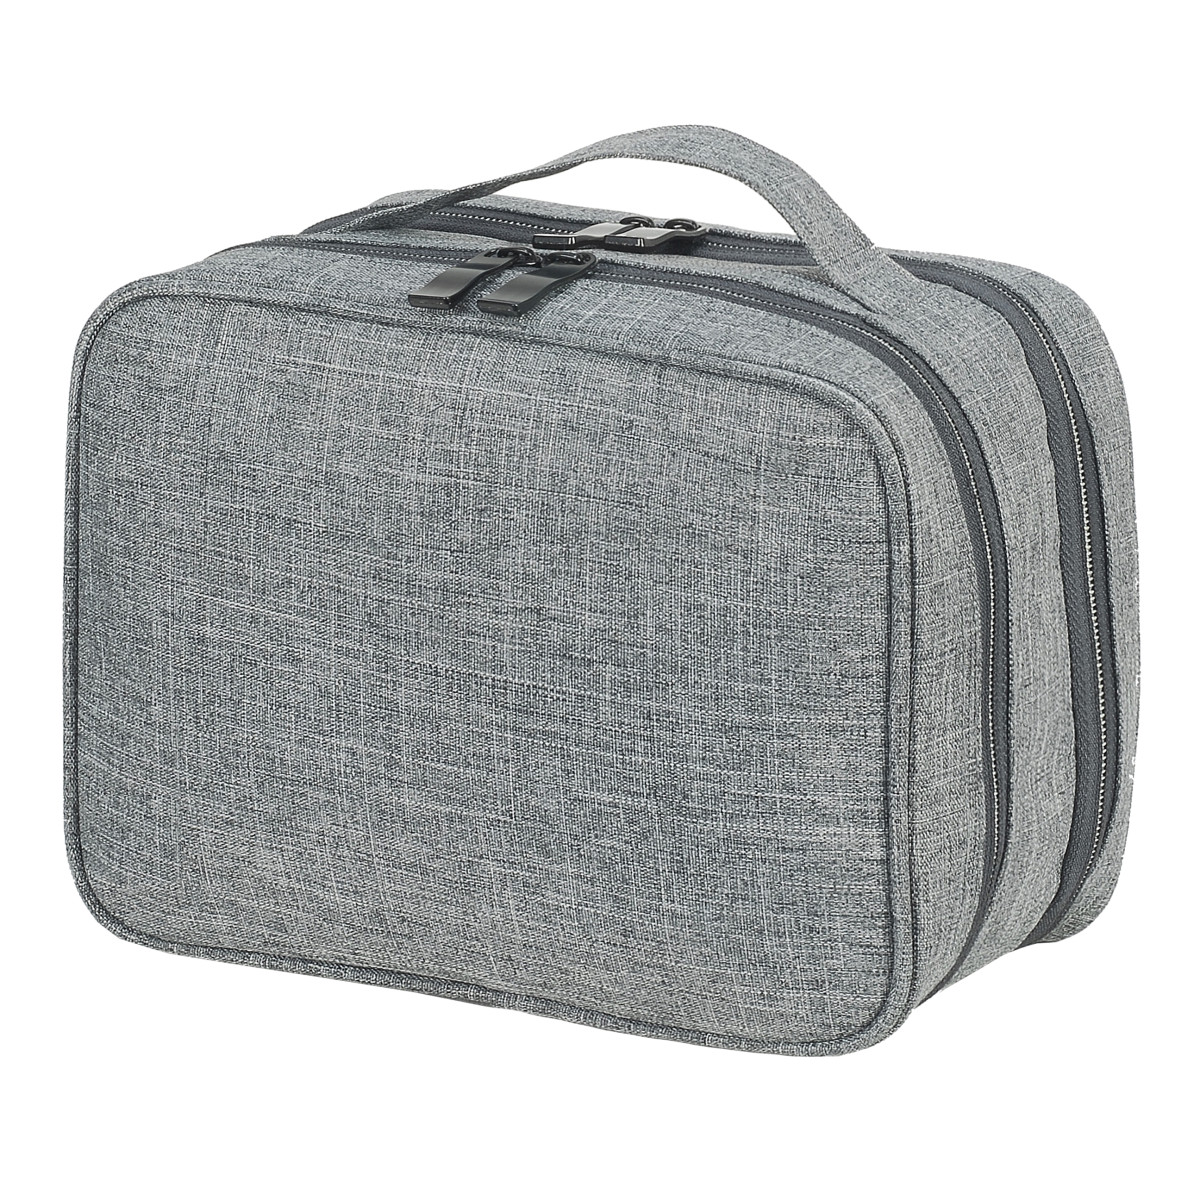 Shugon Accesory/ Toiletry Pouch